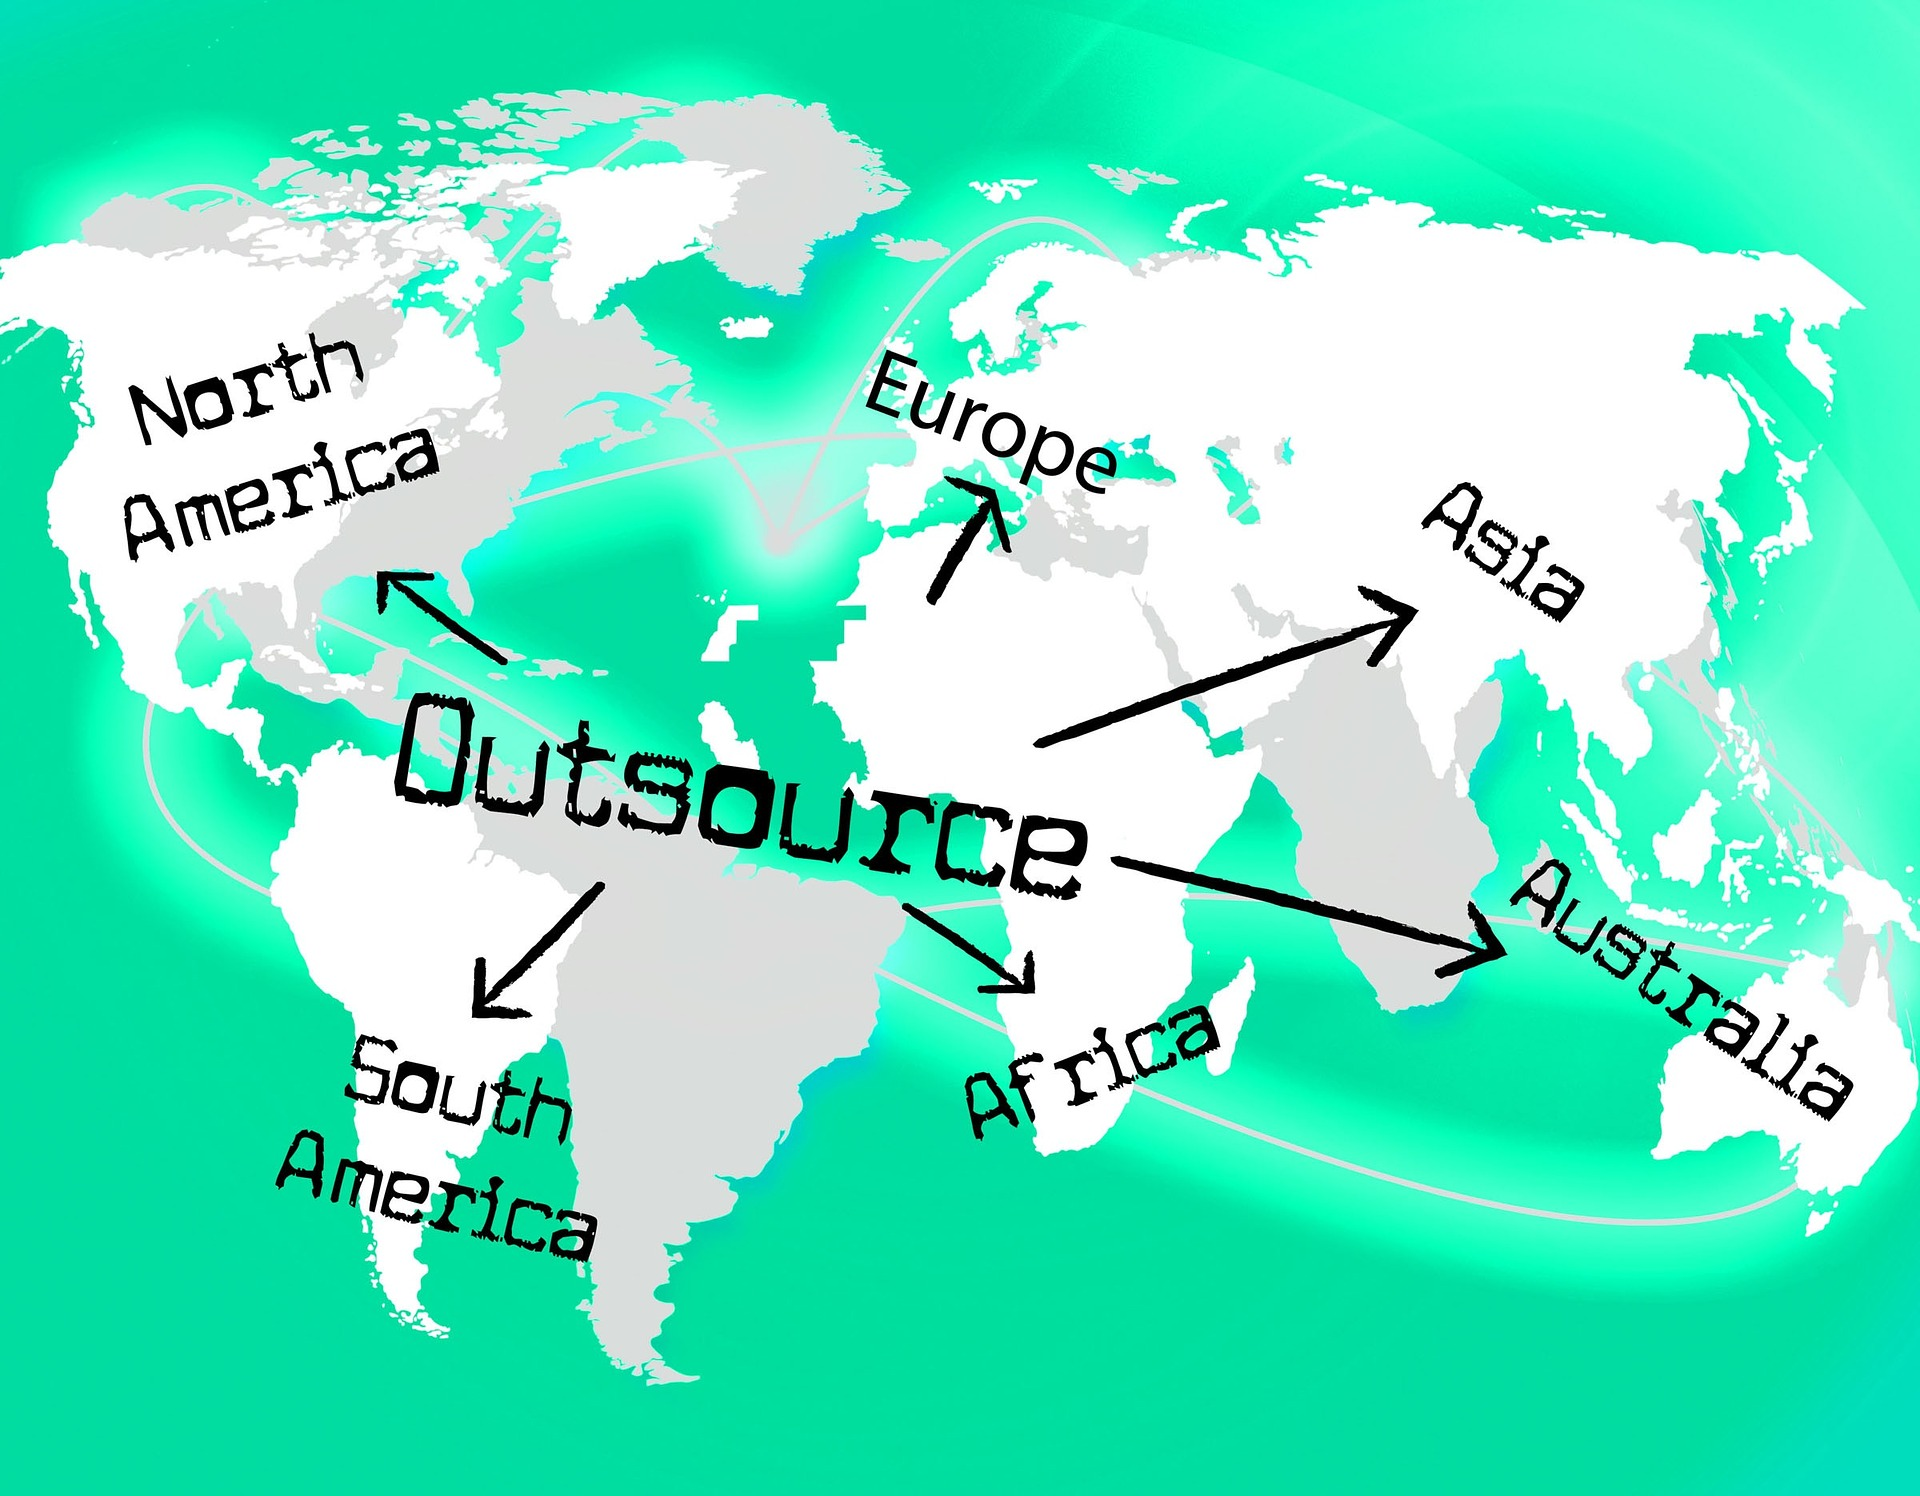 outsource across different continents